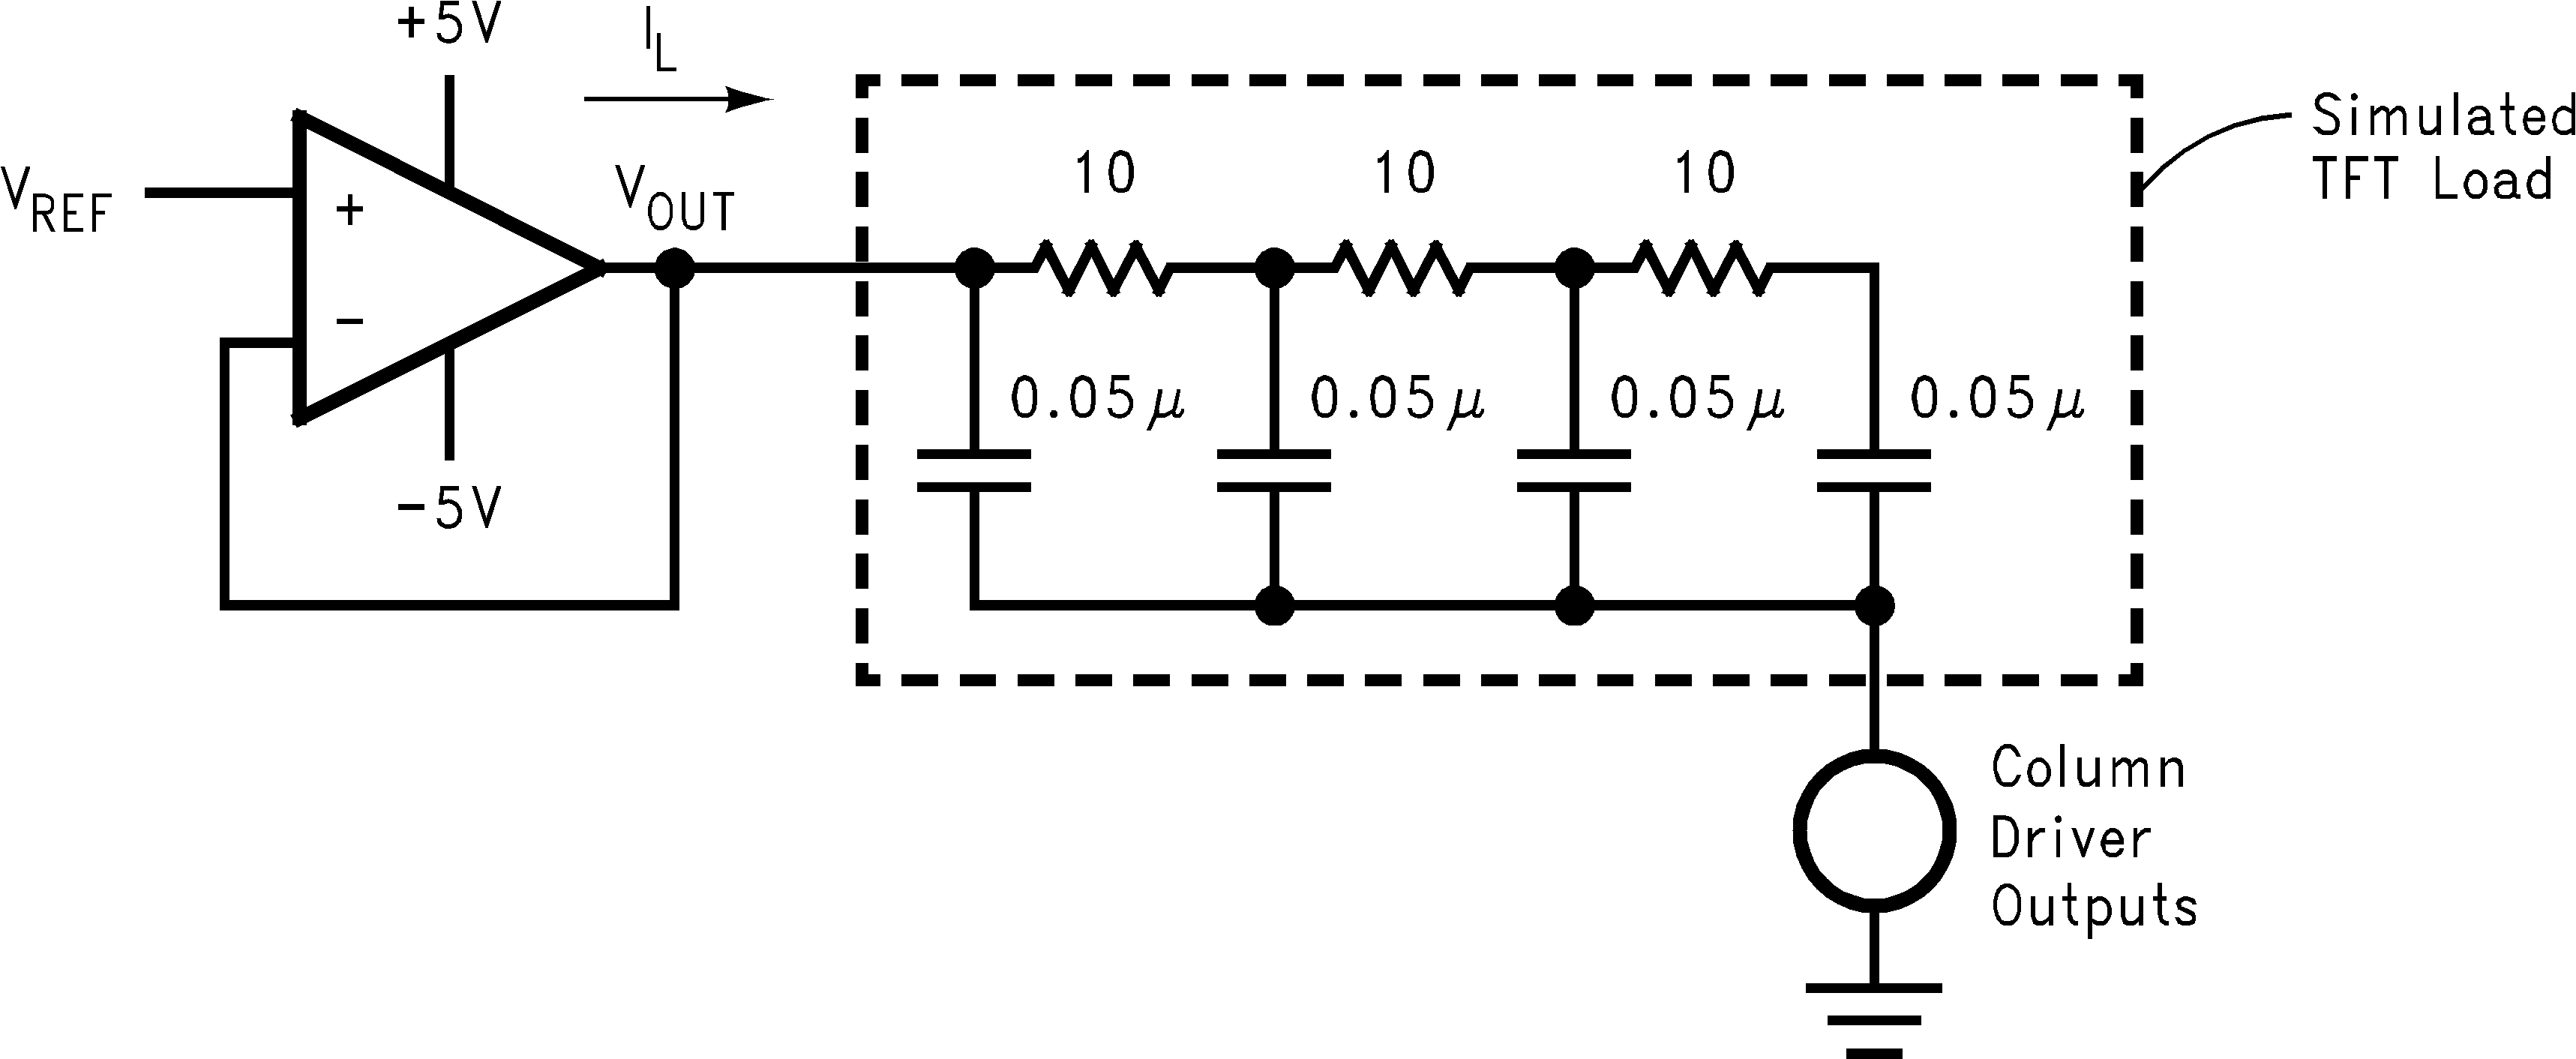 Lm8261 Turn A Compensated Current Sink Into Common Emitter Ce Amplifier Figure 56 Vcom Driver Application Schematic